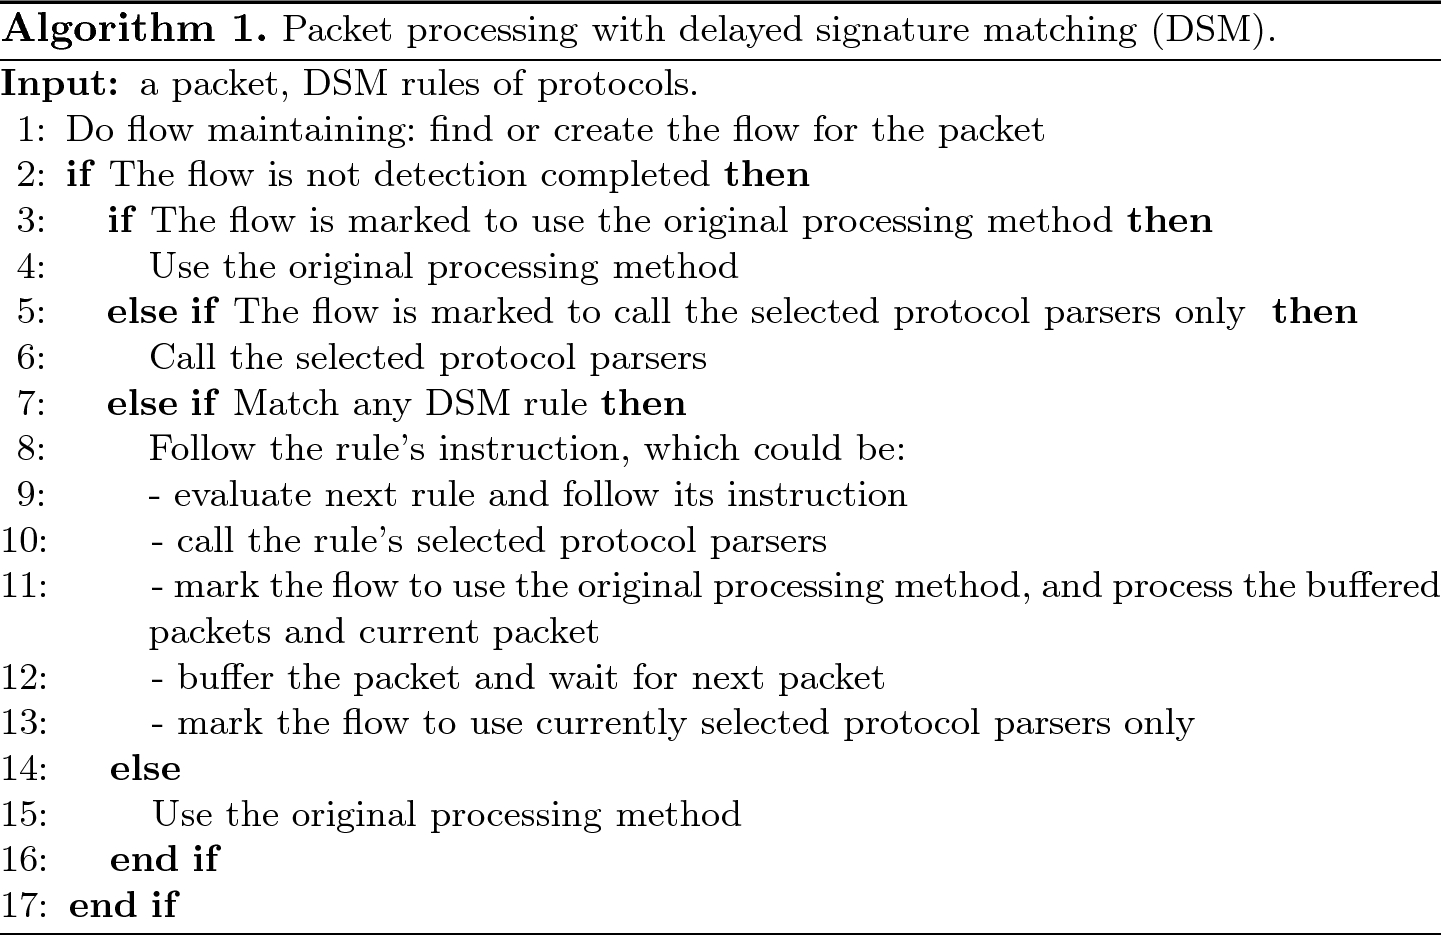 Deep Packet Inspection with Delayed Signature Matching in Network